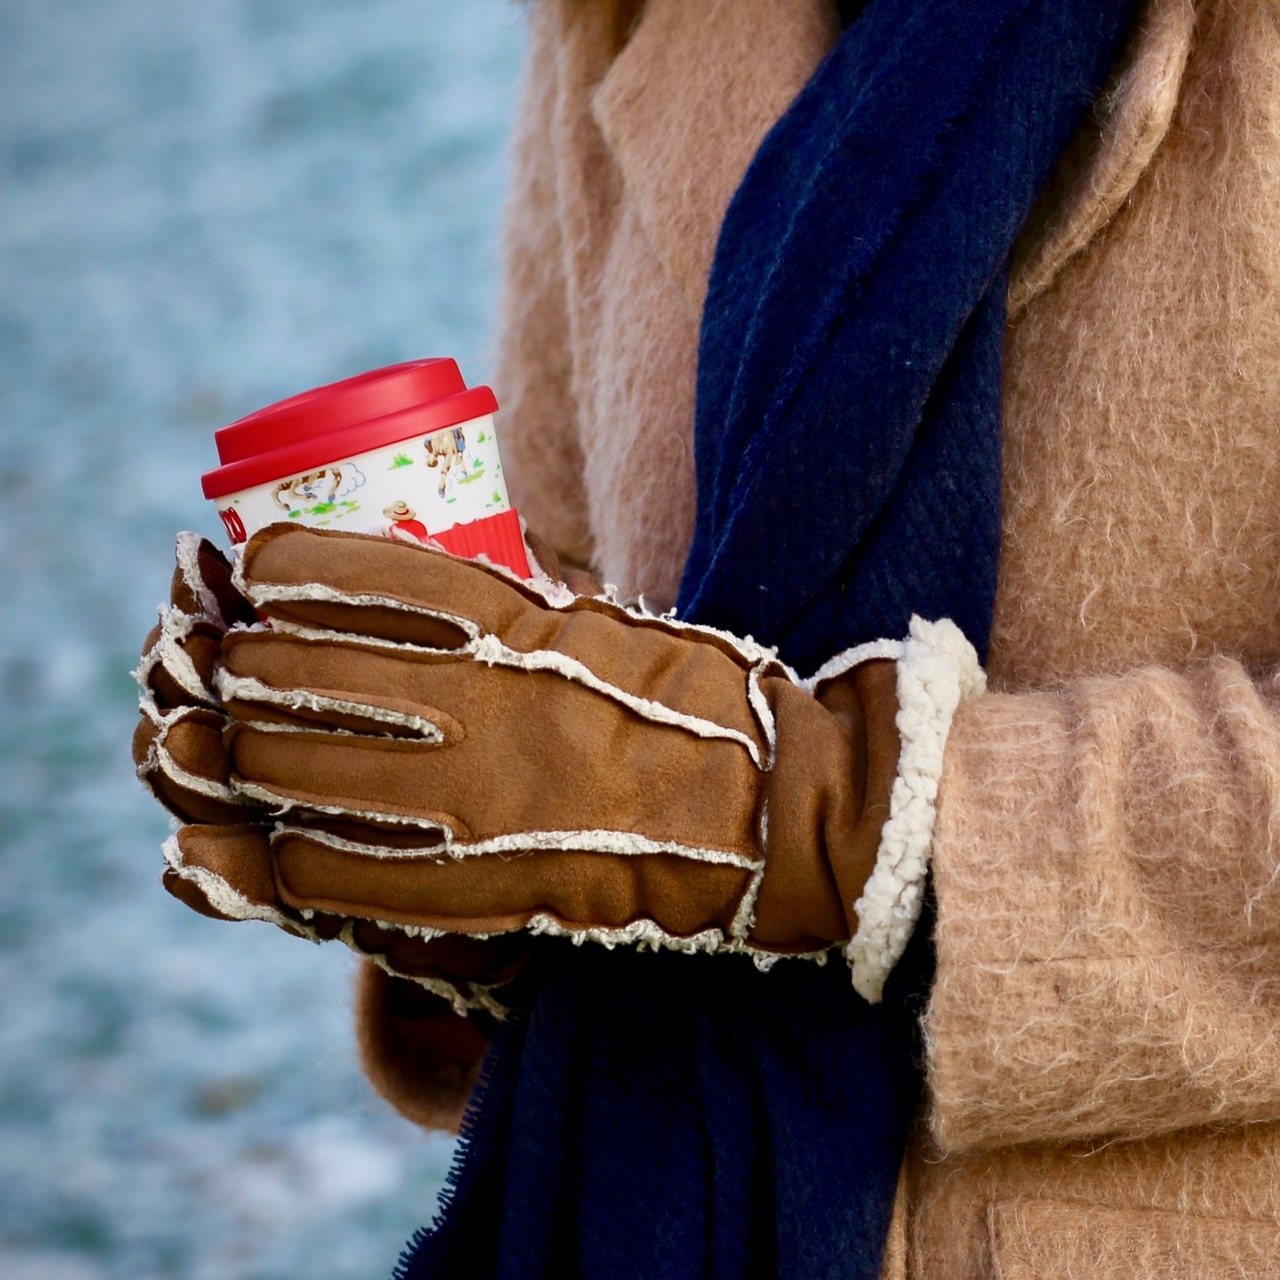 Take a hot drink out with you in winter